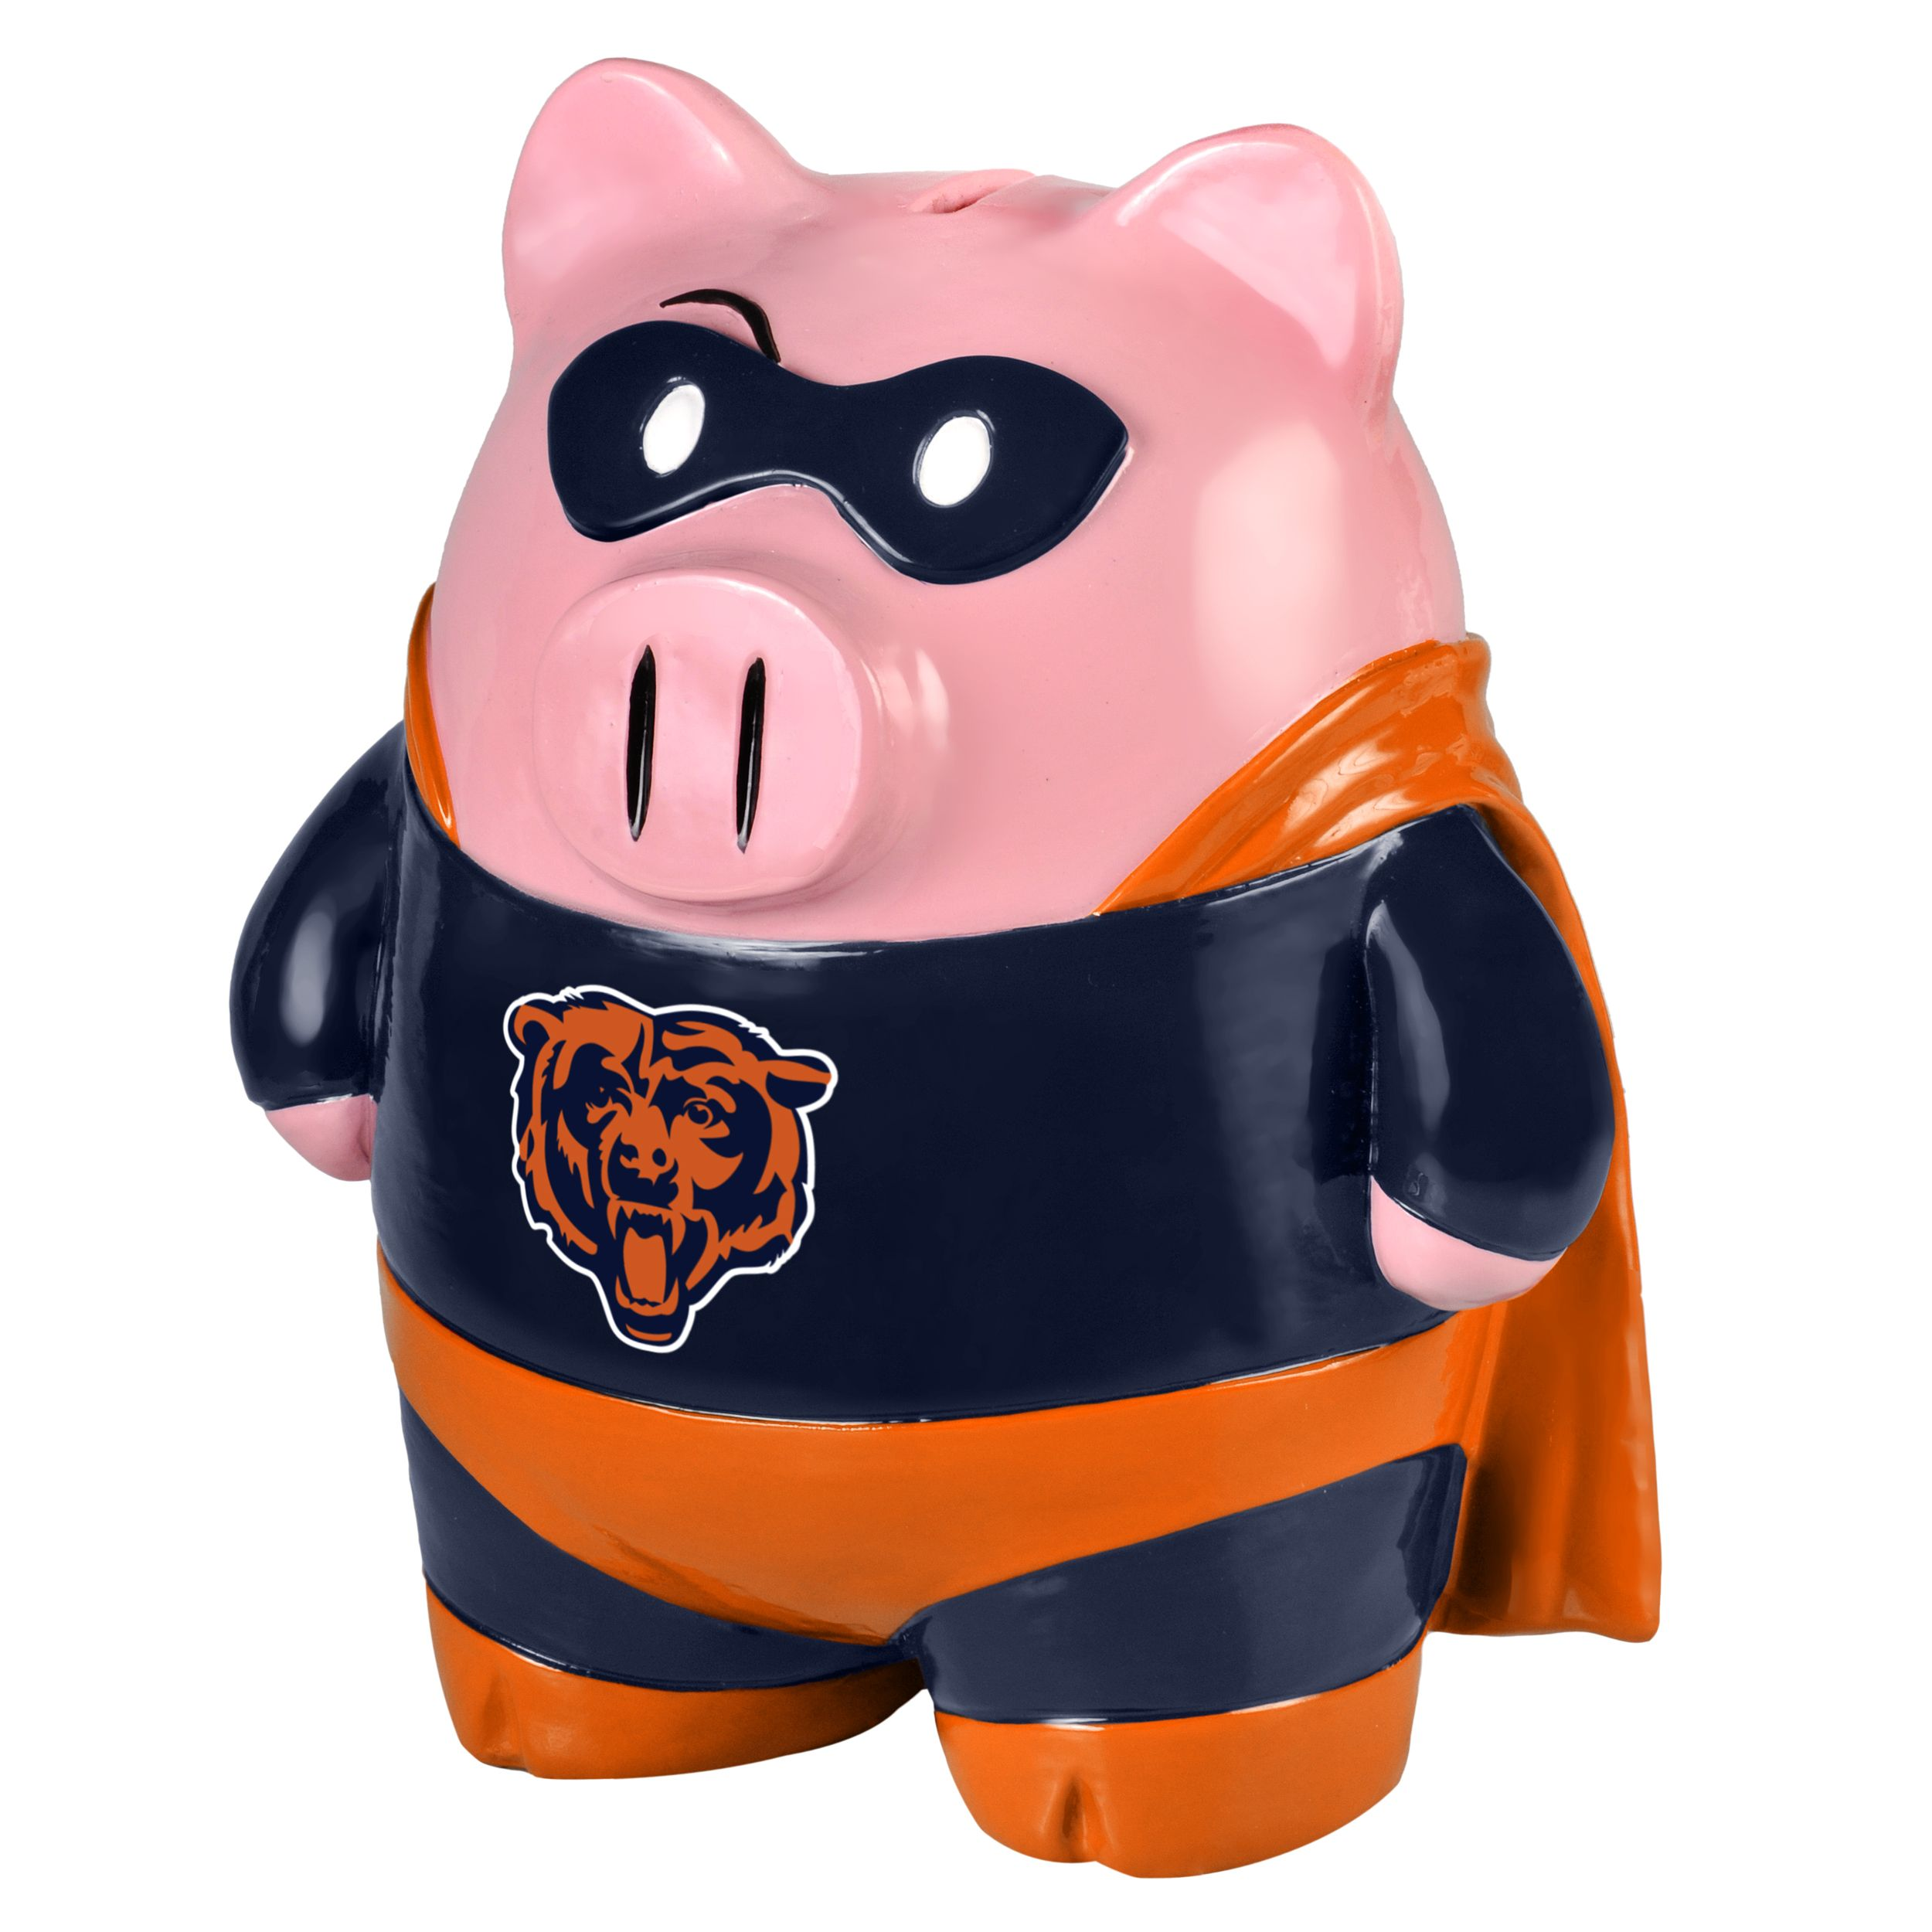 "Chicago Bears 8"" Large Stand Up Superhero Piggy Bank [Misc.] by Forever Collectibles"